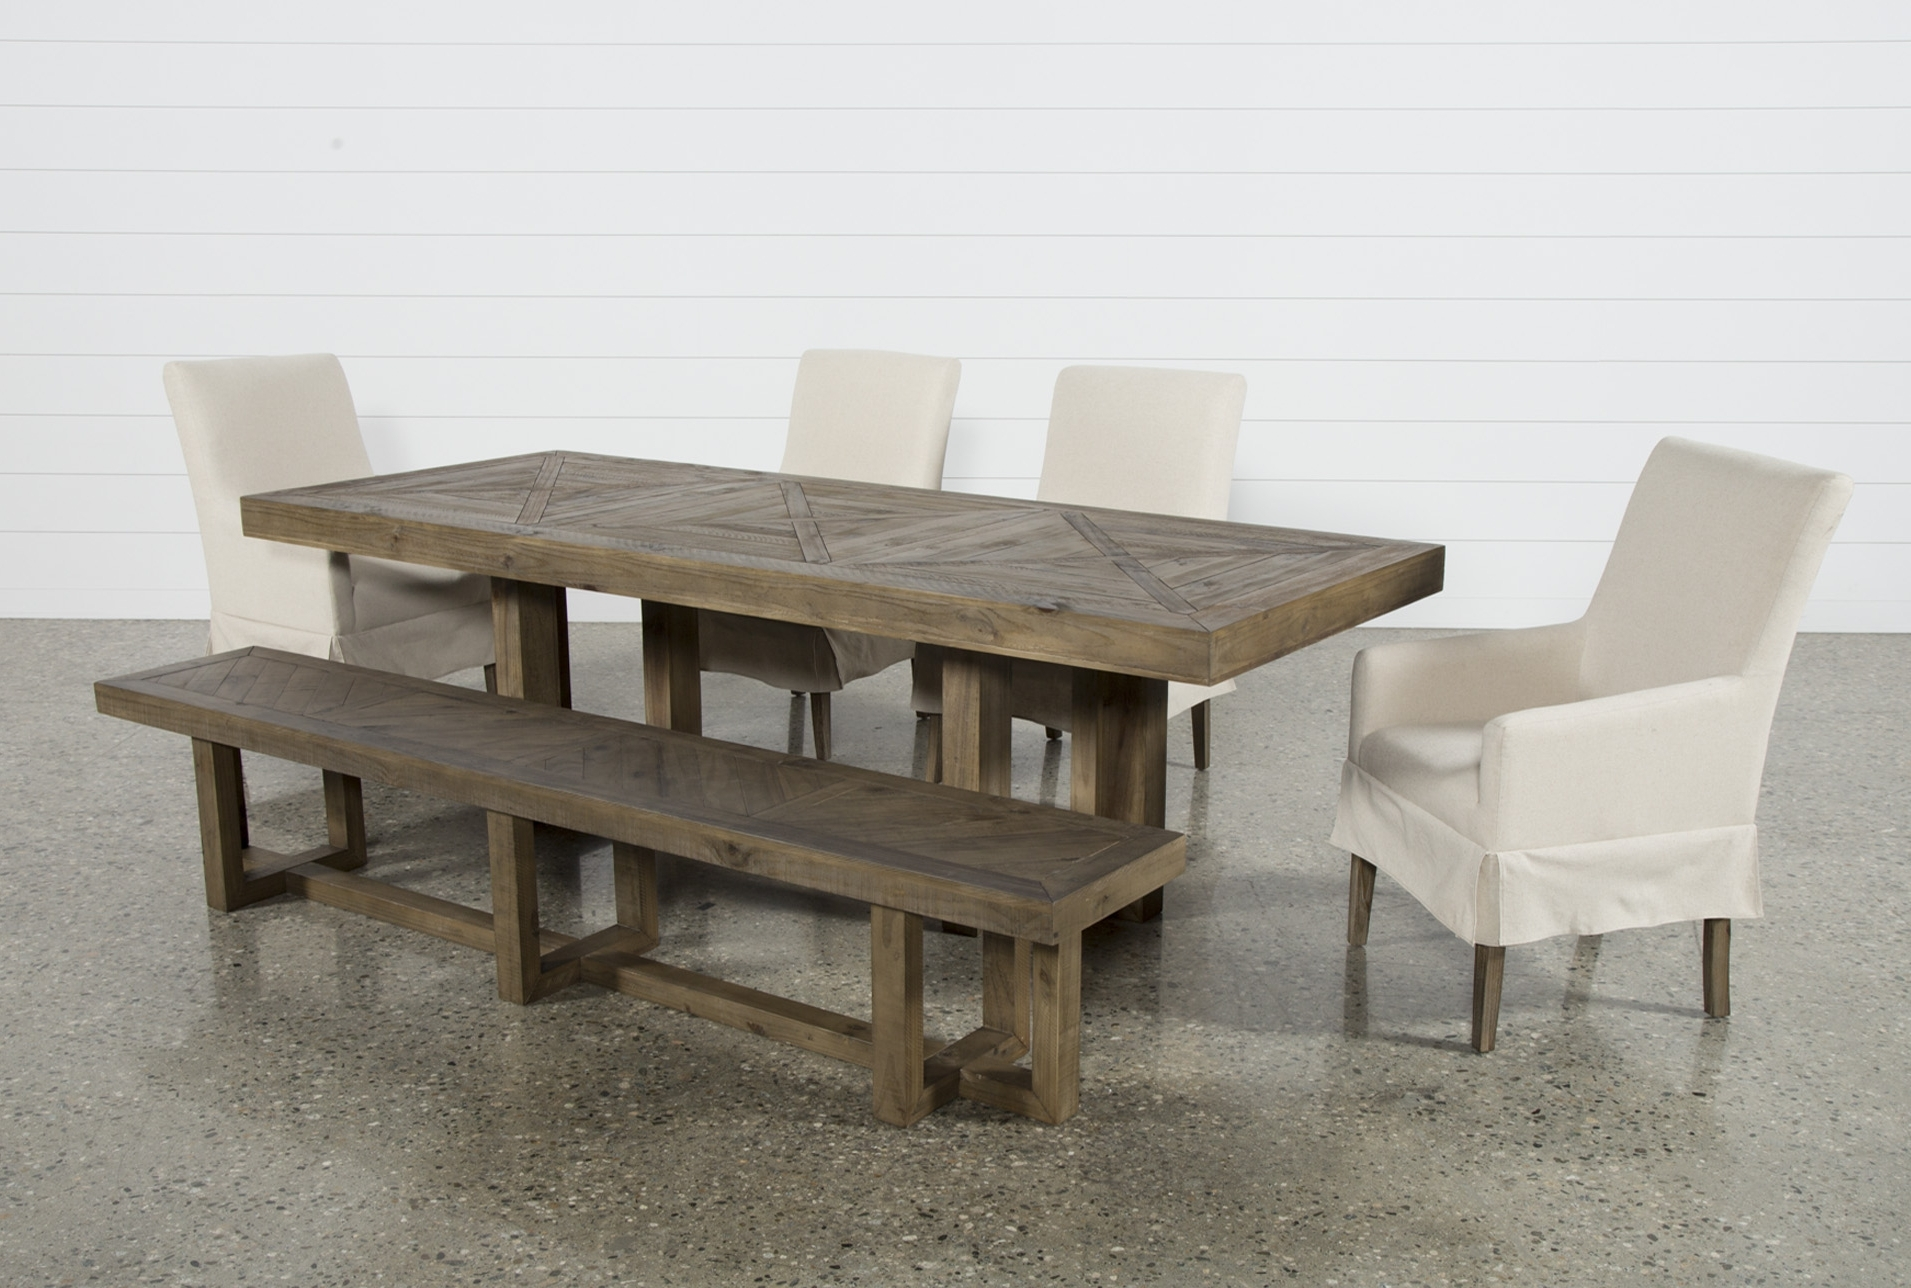 Most Recent Safavieh Jovanna White/oak Acacia Wood 2 Seat Patio Bench Inside Palazzo 6 Piece Dining Set With Mindy Slipcovered Side Chairs (View 11 of 25)